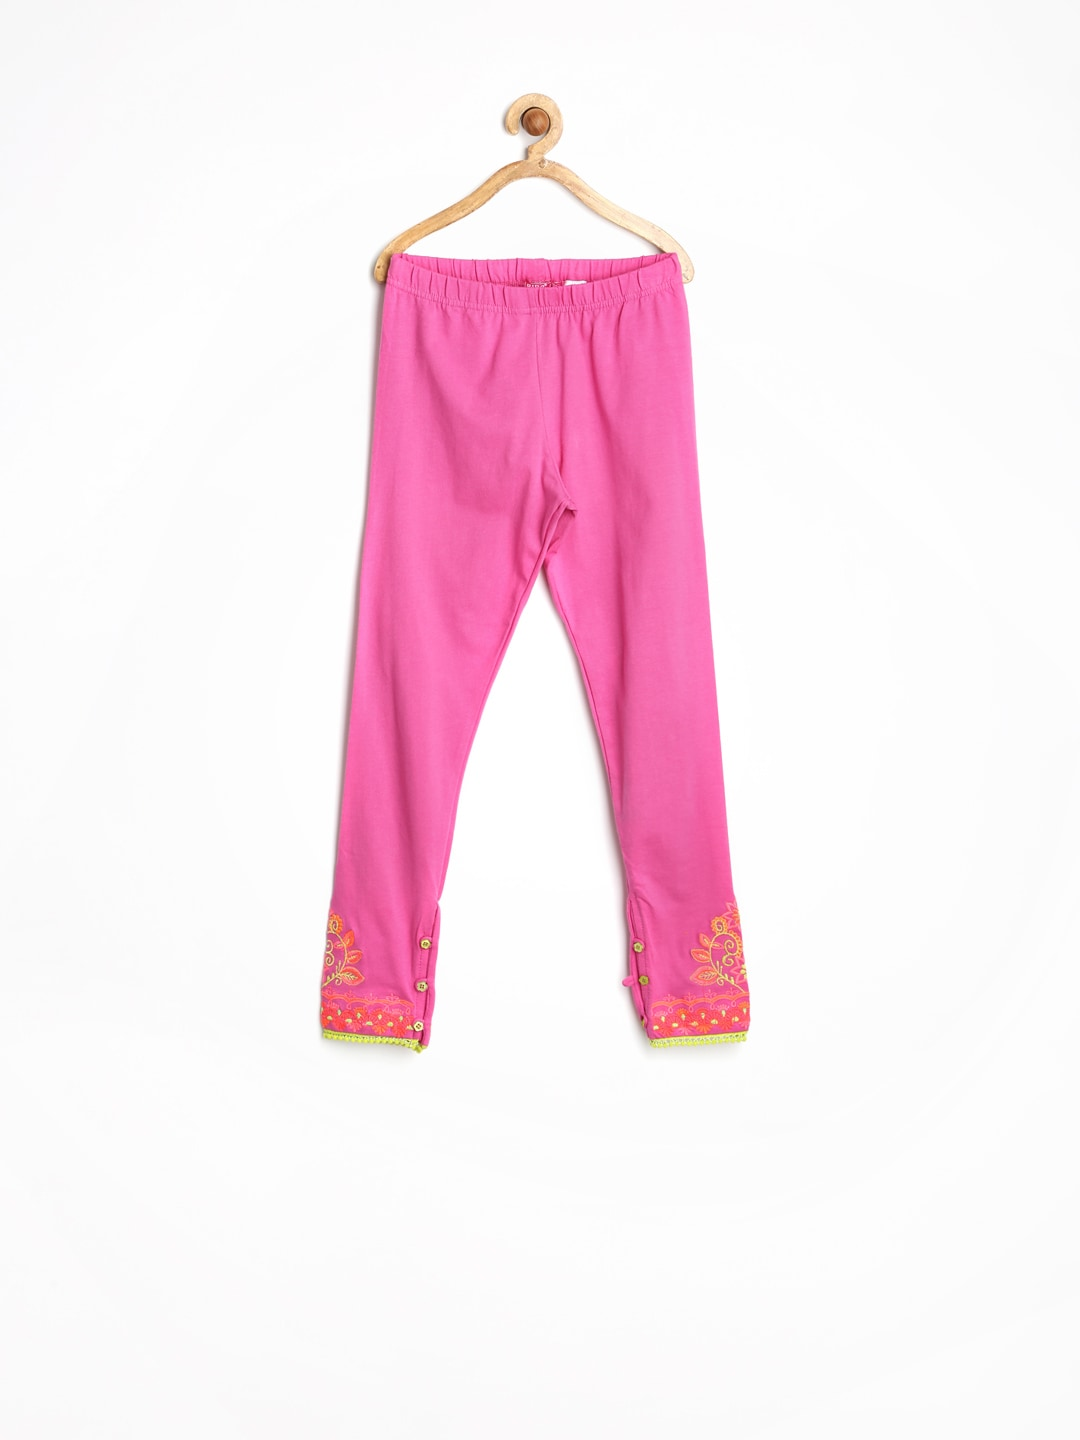 BIBA Girls Pink Churidar Leggings